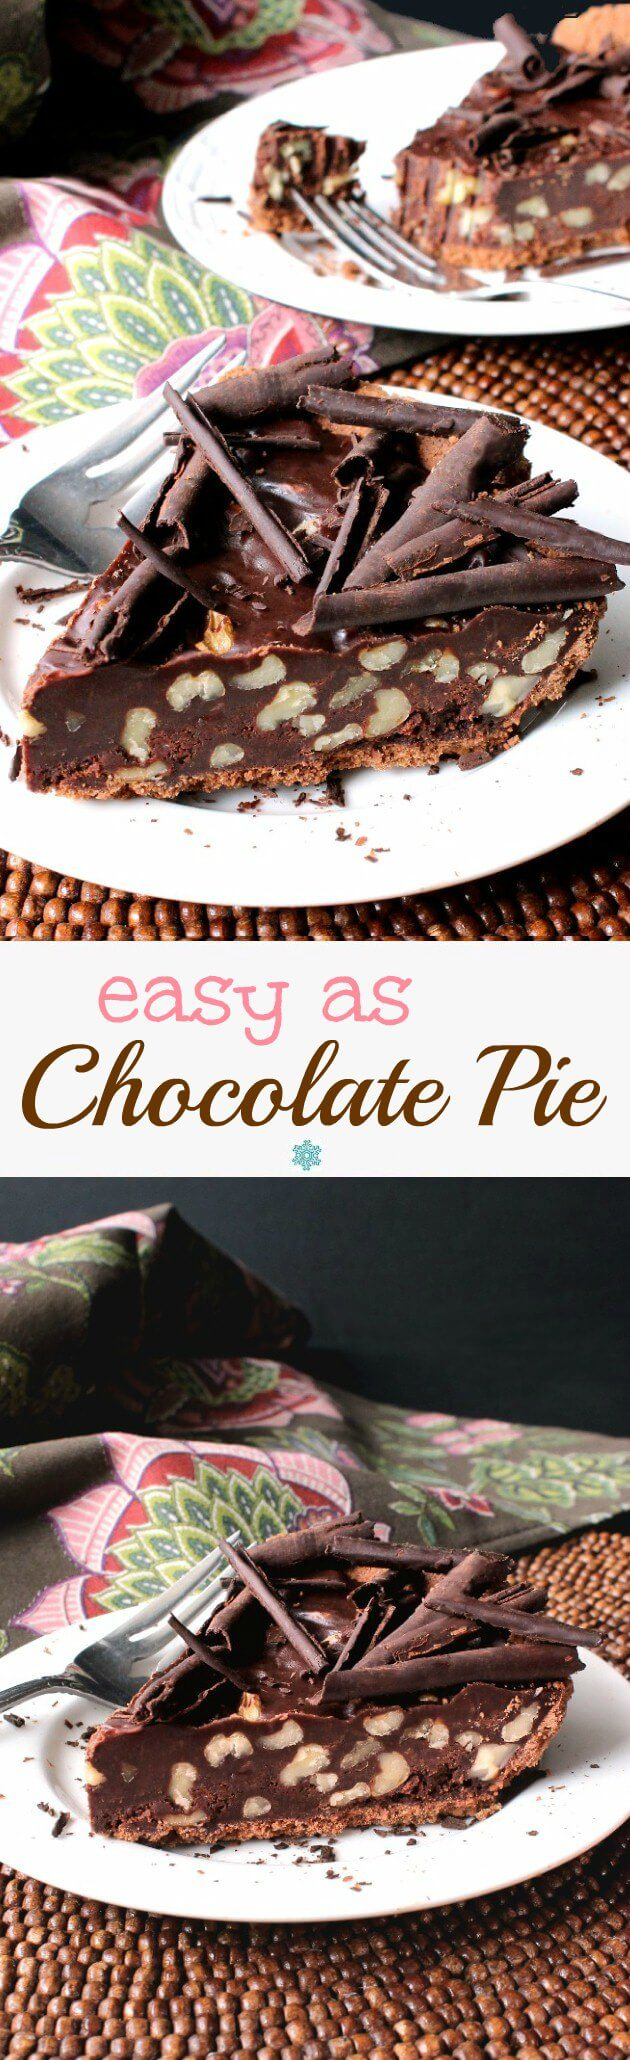 A photo of no bake chocolate pie with text for pinning.